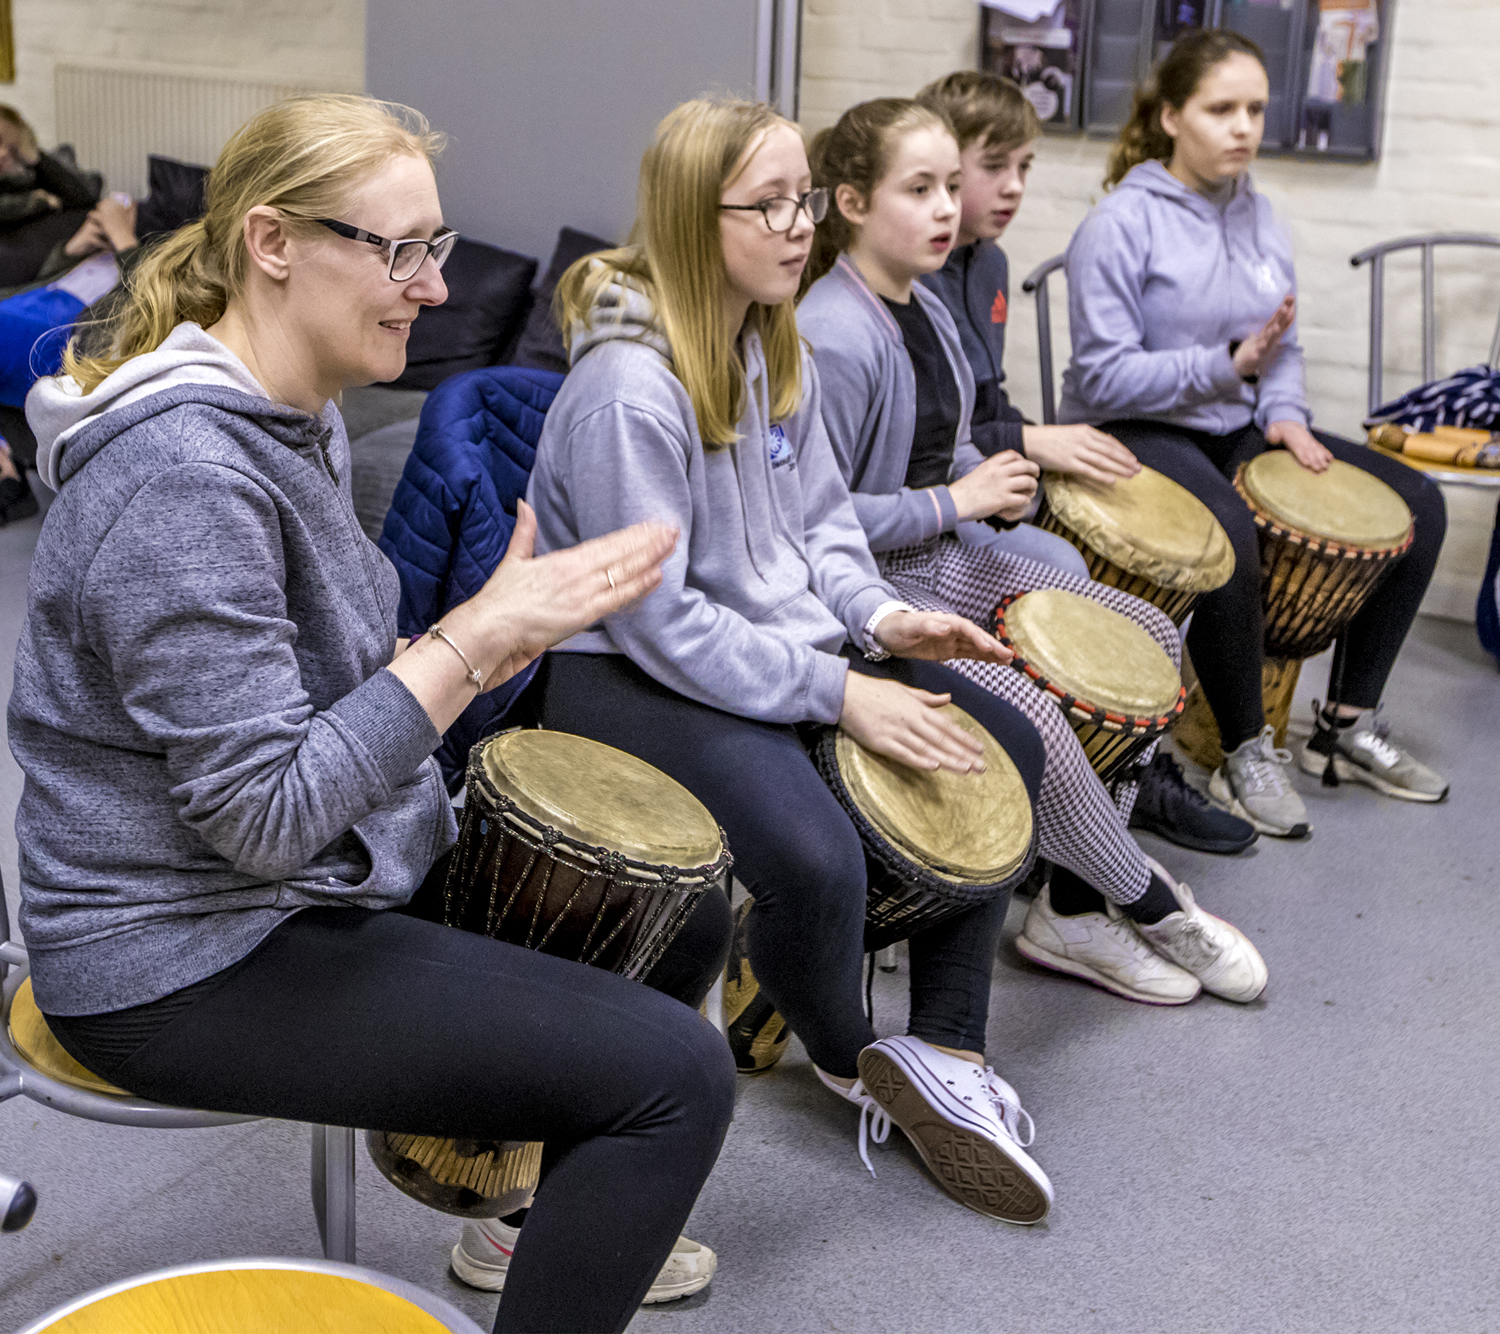 Drumming workshop brings a carnival atmosphere to Witham youth club